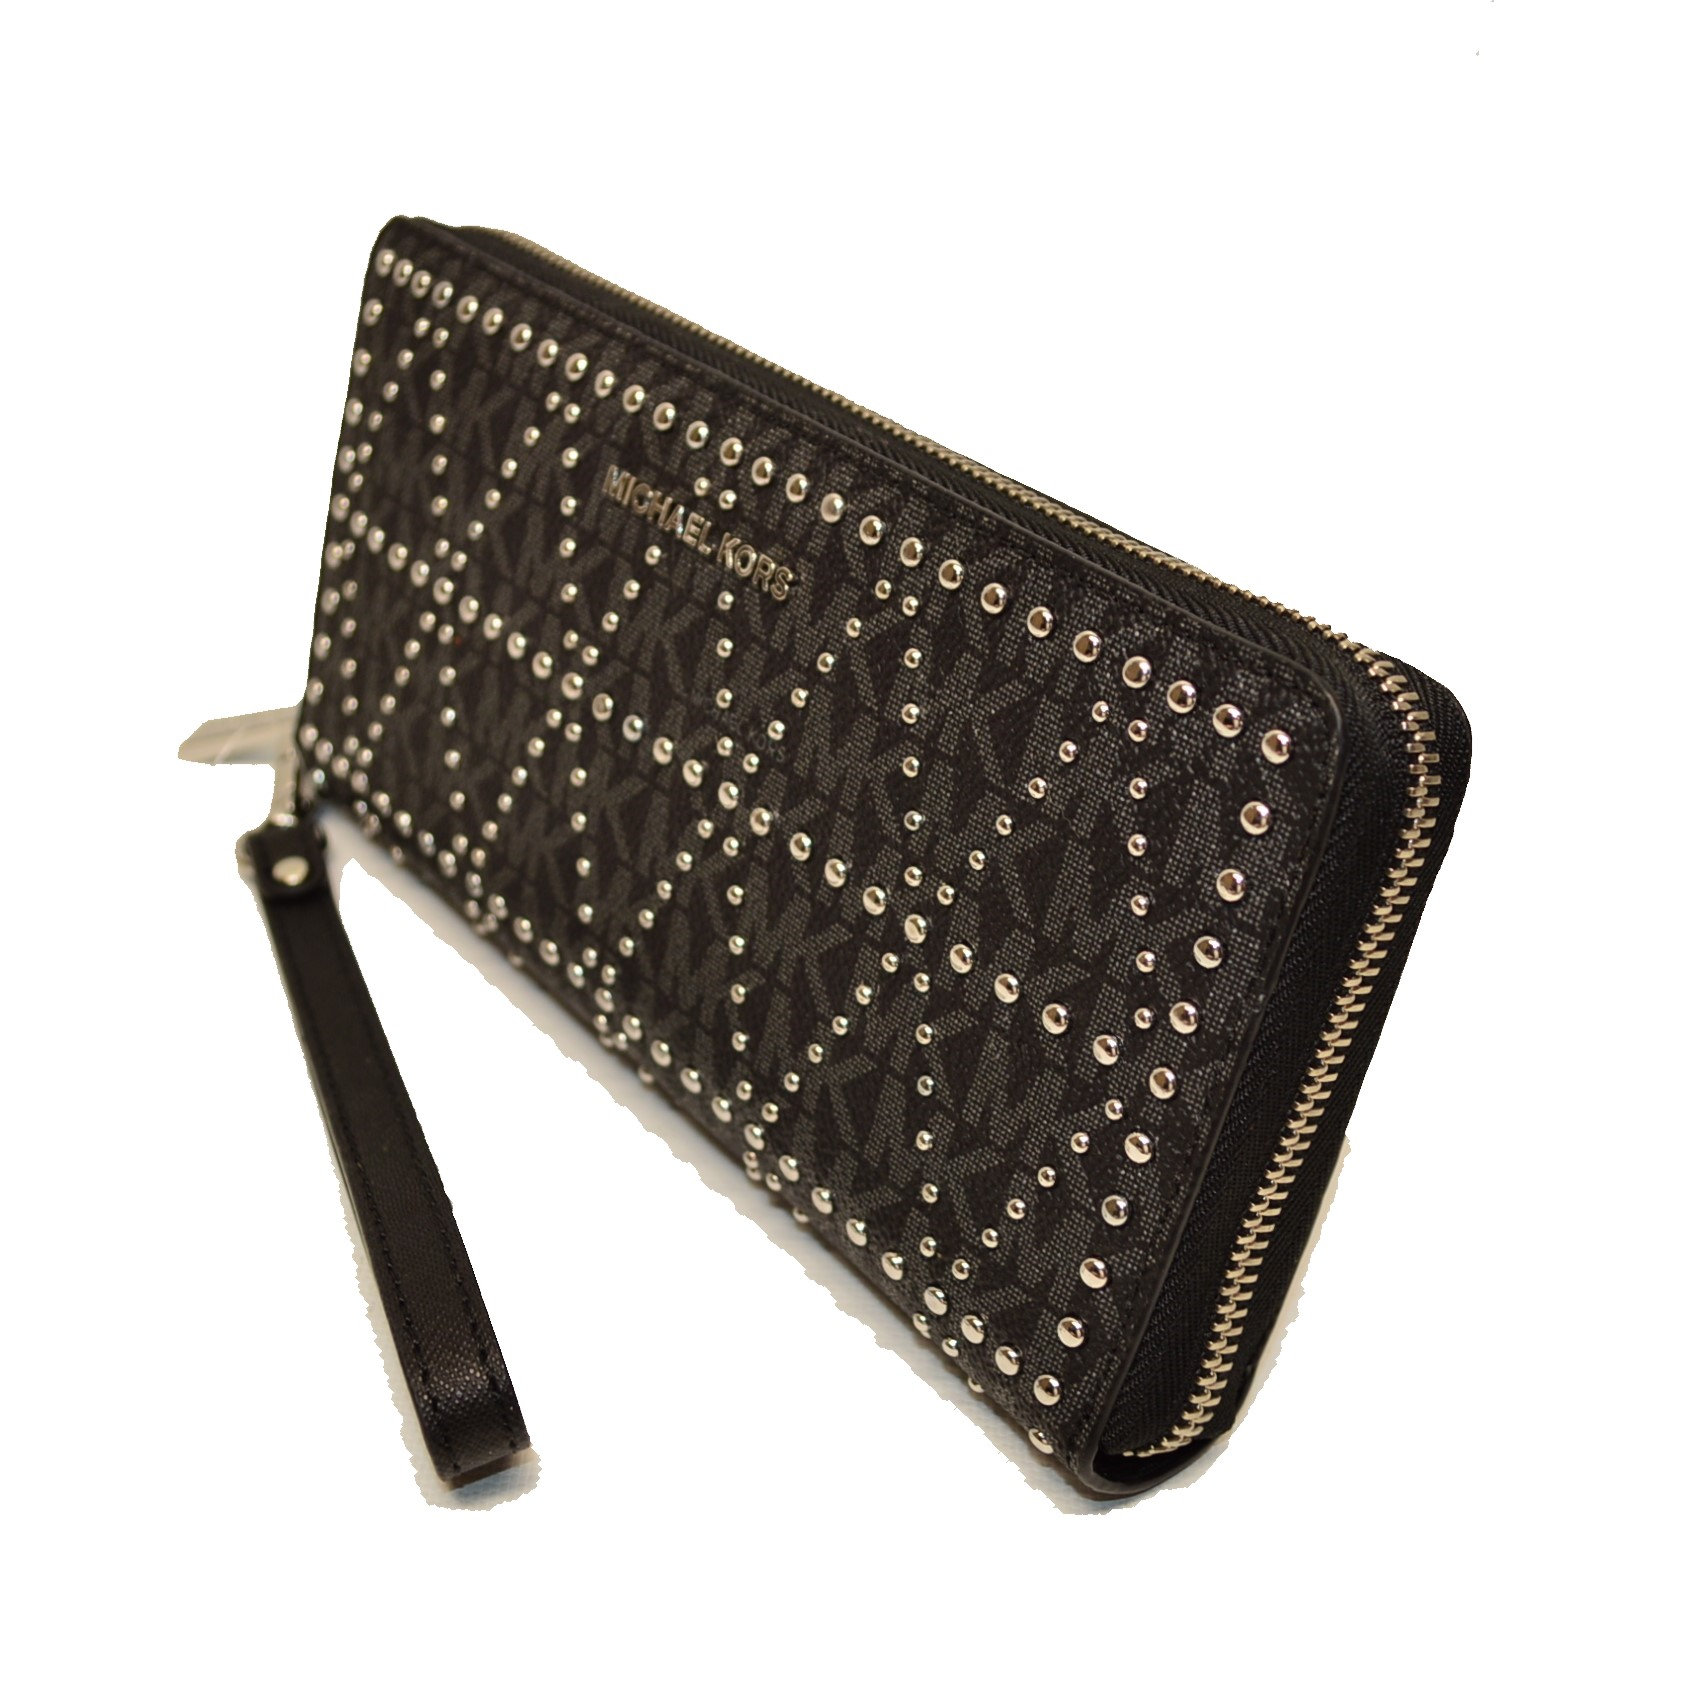 30ffb632b50047 Michael Kors Black Money Pieces Studded Lg Leather Logo Zip Clutch Wristlet  Wal